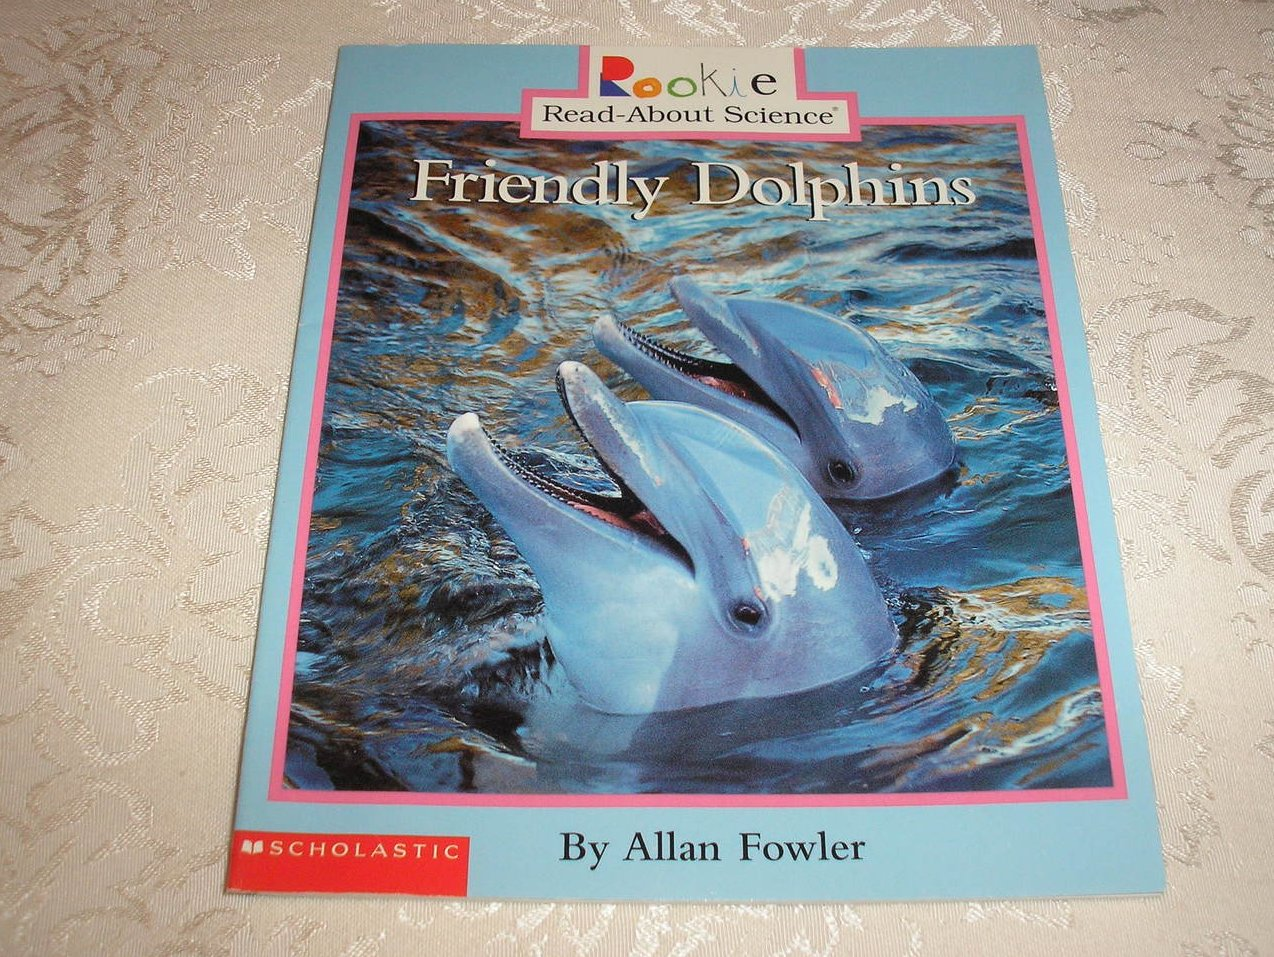 Friendly Dolphins Allan Fowler Rookie Read-About Science very good sc